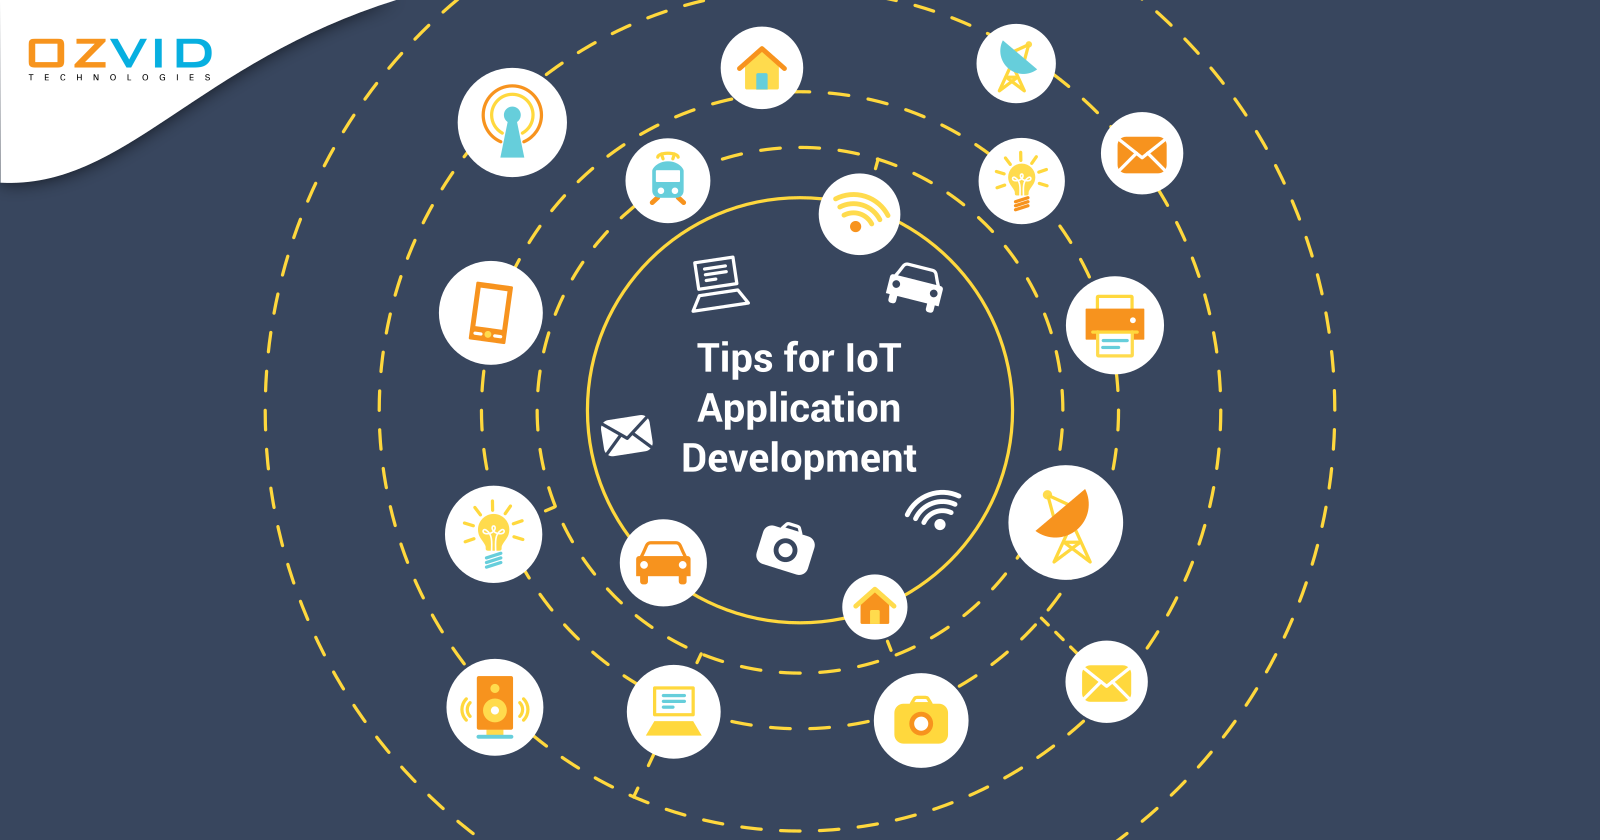 Tips to Consider for Developing IoT Applications